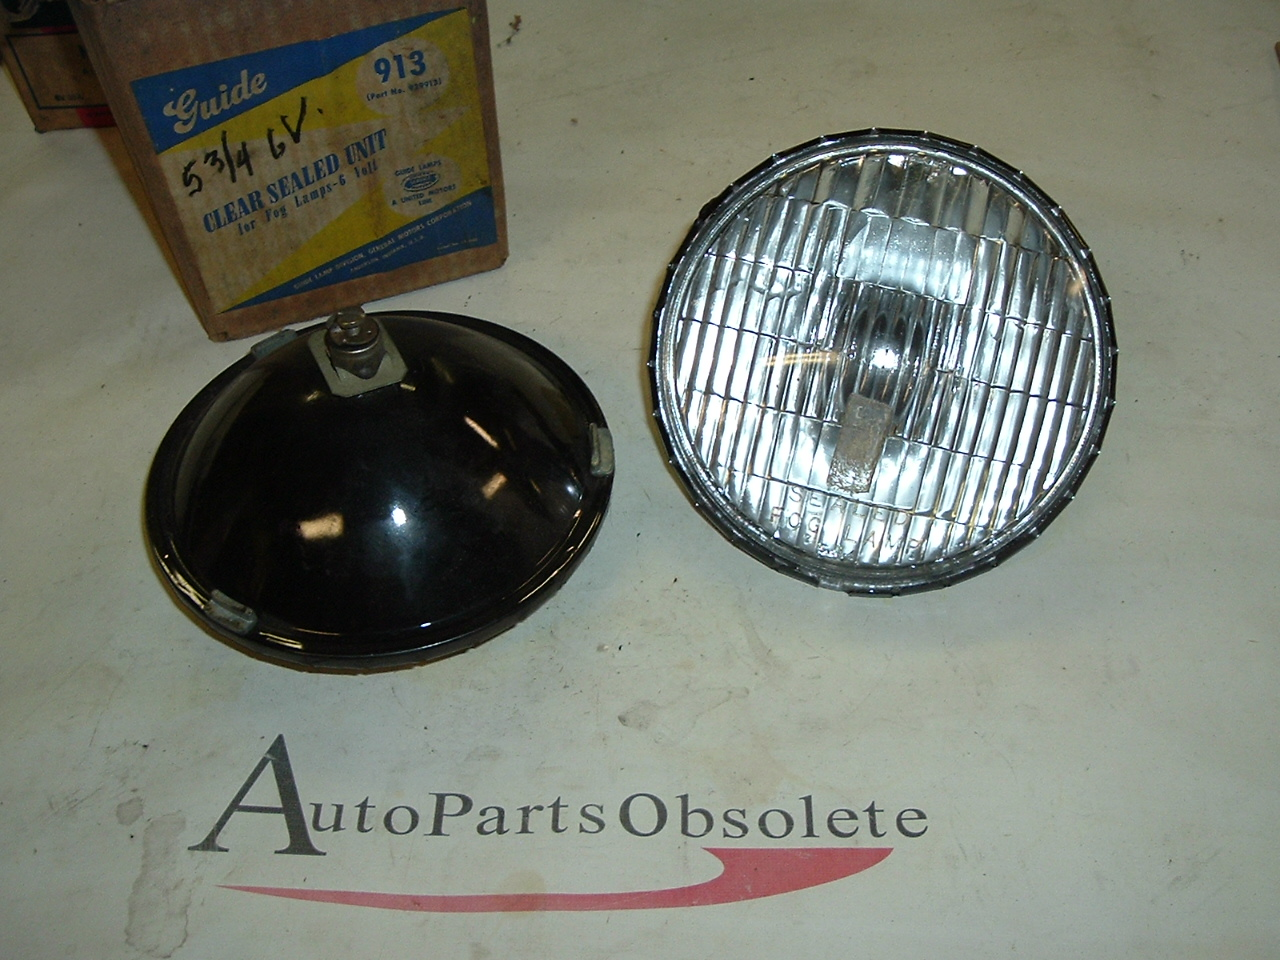 Steelback AC GUIDE fog lamp bulbs pair Clear 6v 5 3/4 (a 913AC)